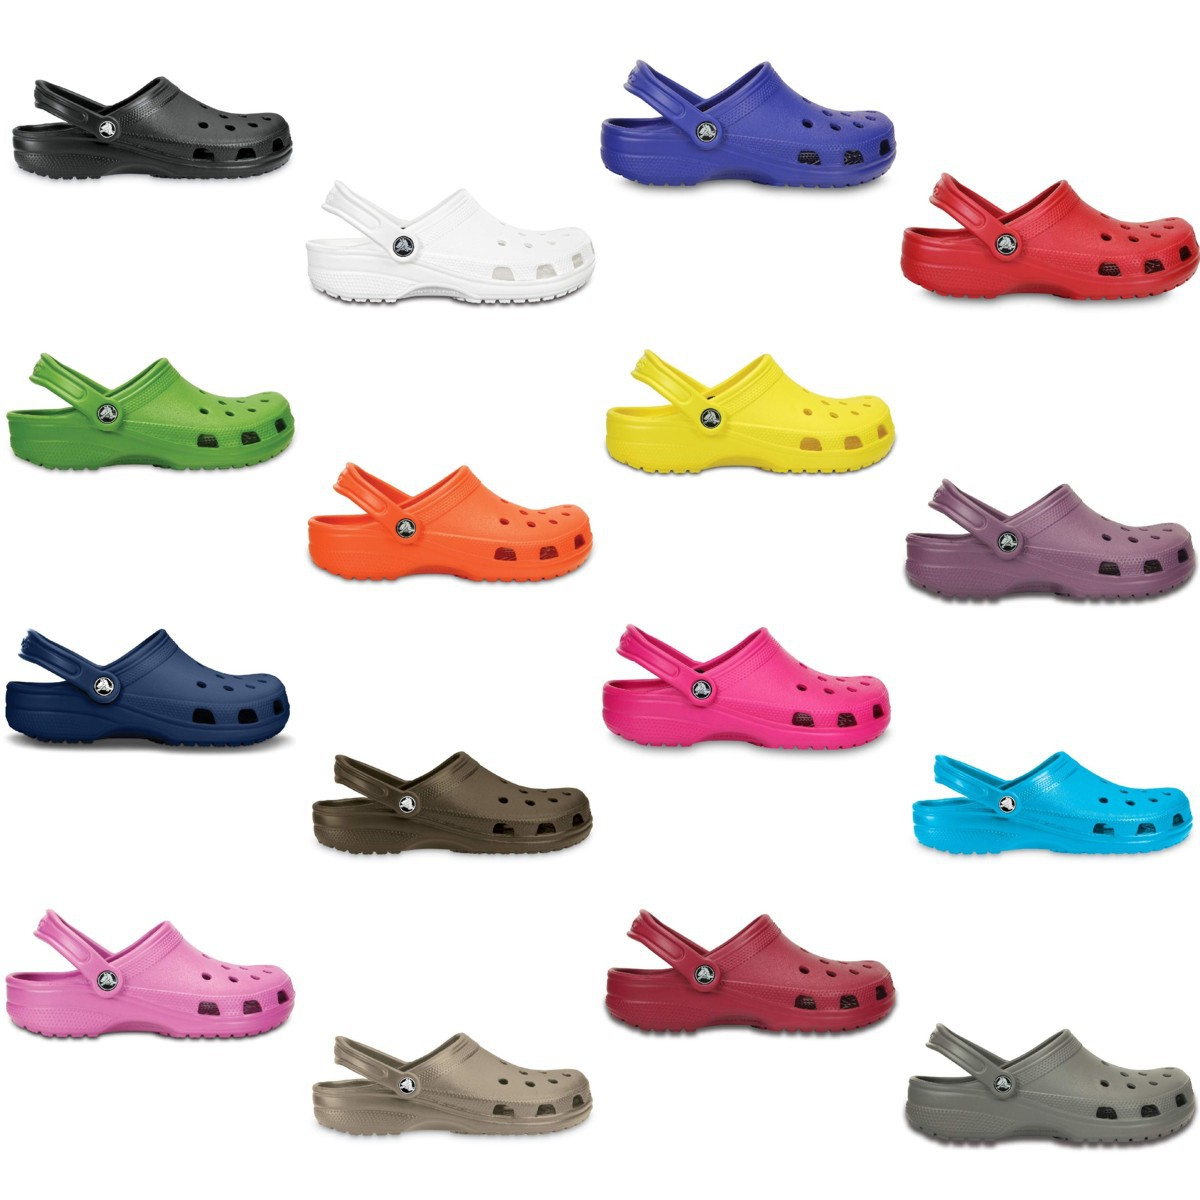 Crocs Classic Clog Reviewed for